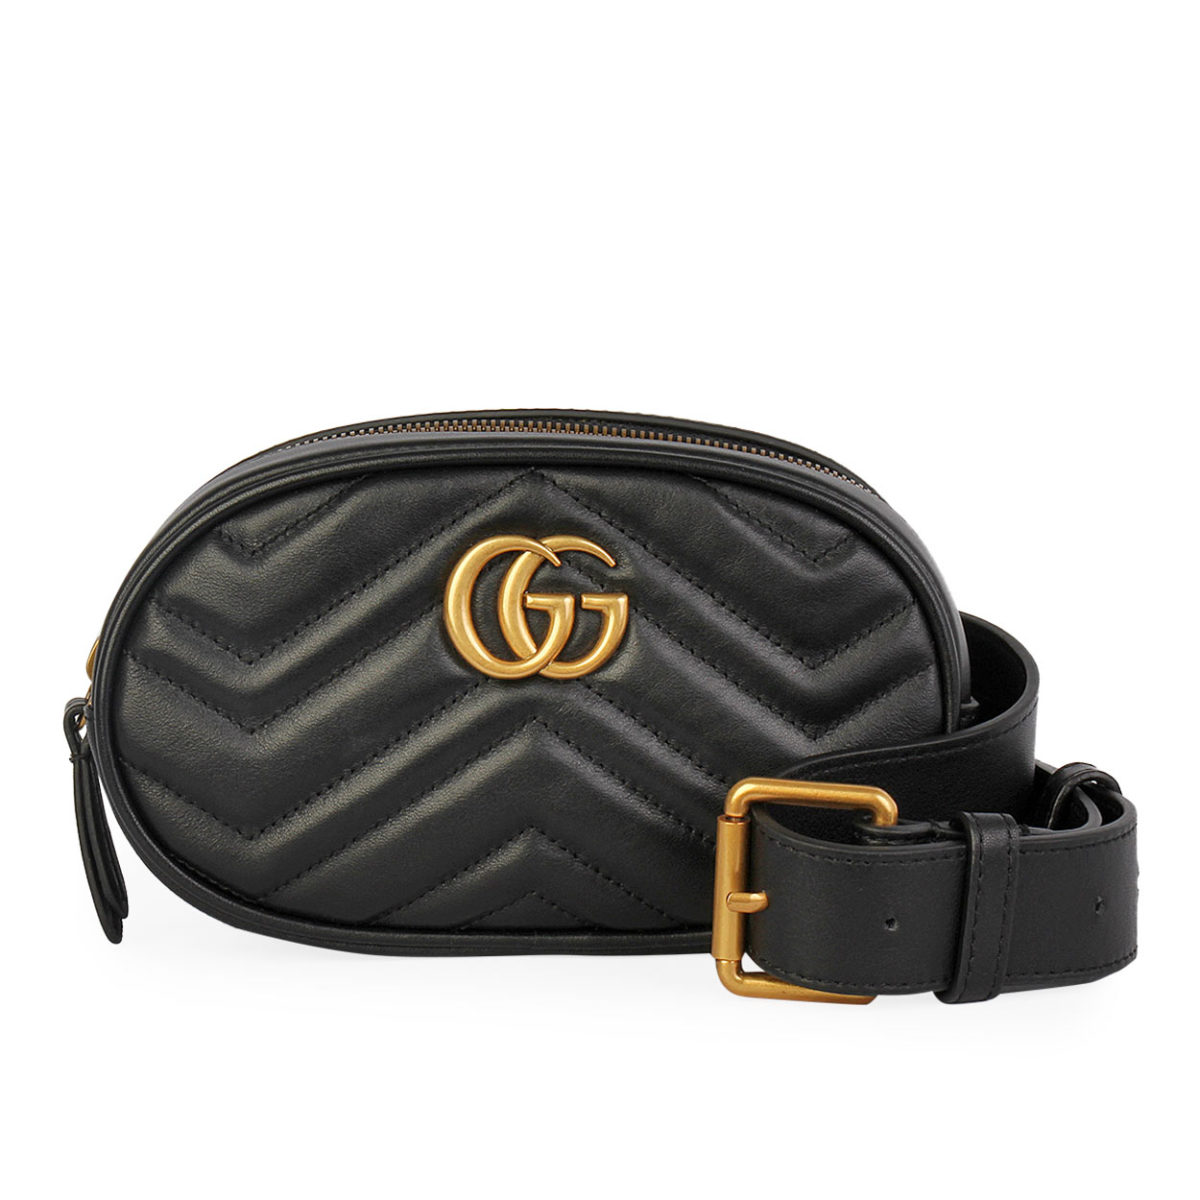 9f3750972 GUCCI GG Marmont Matelassé Belt Bag Black | Luxity